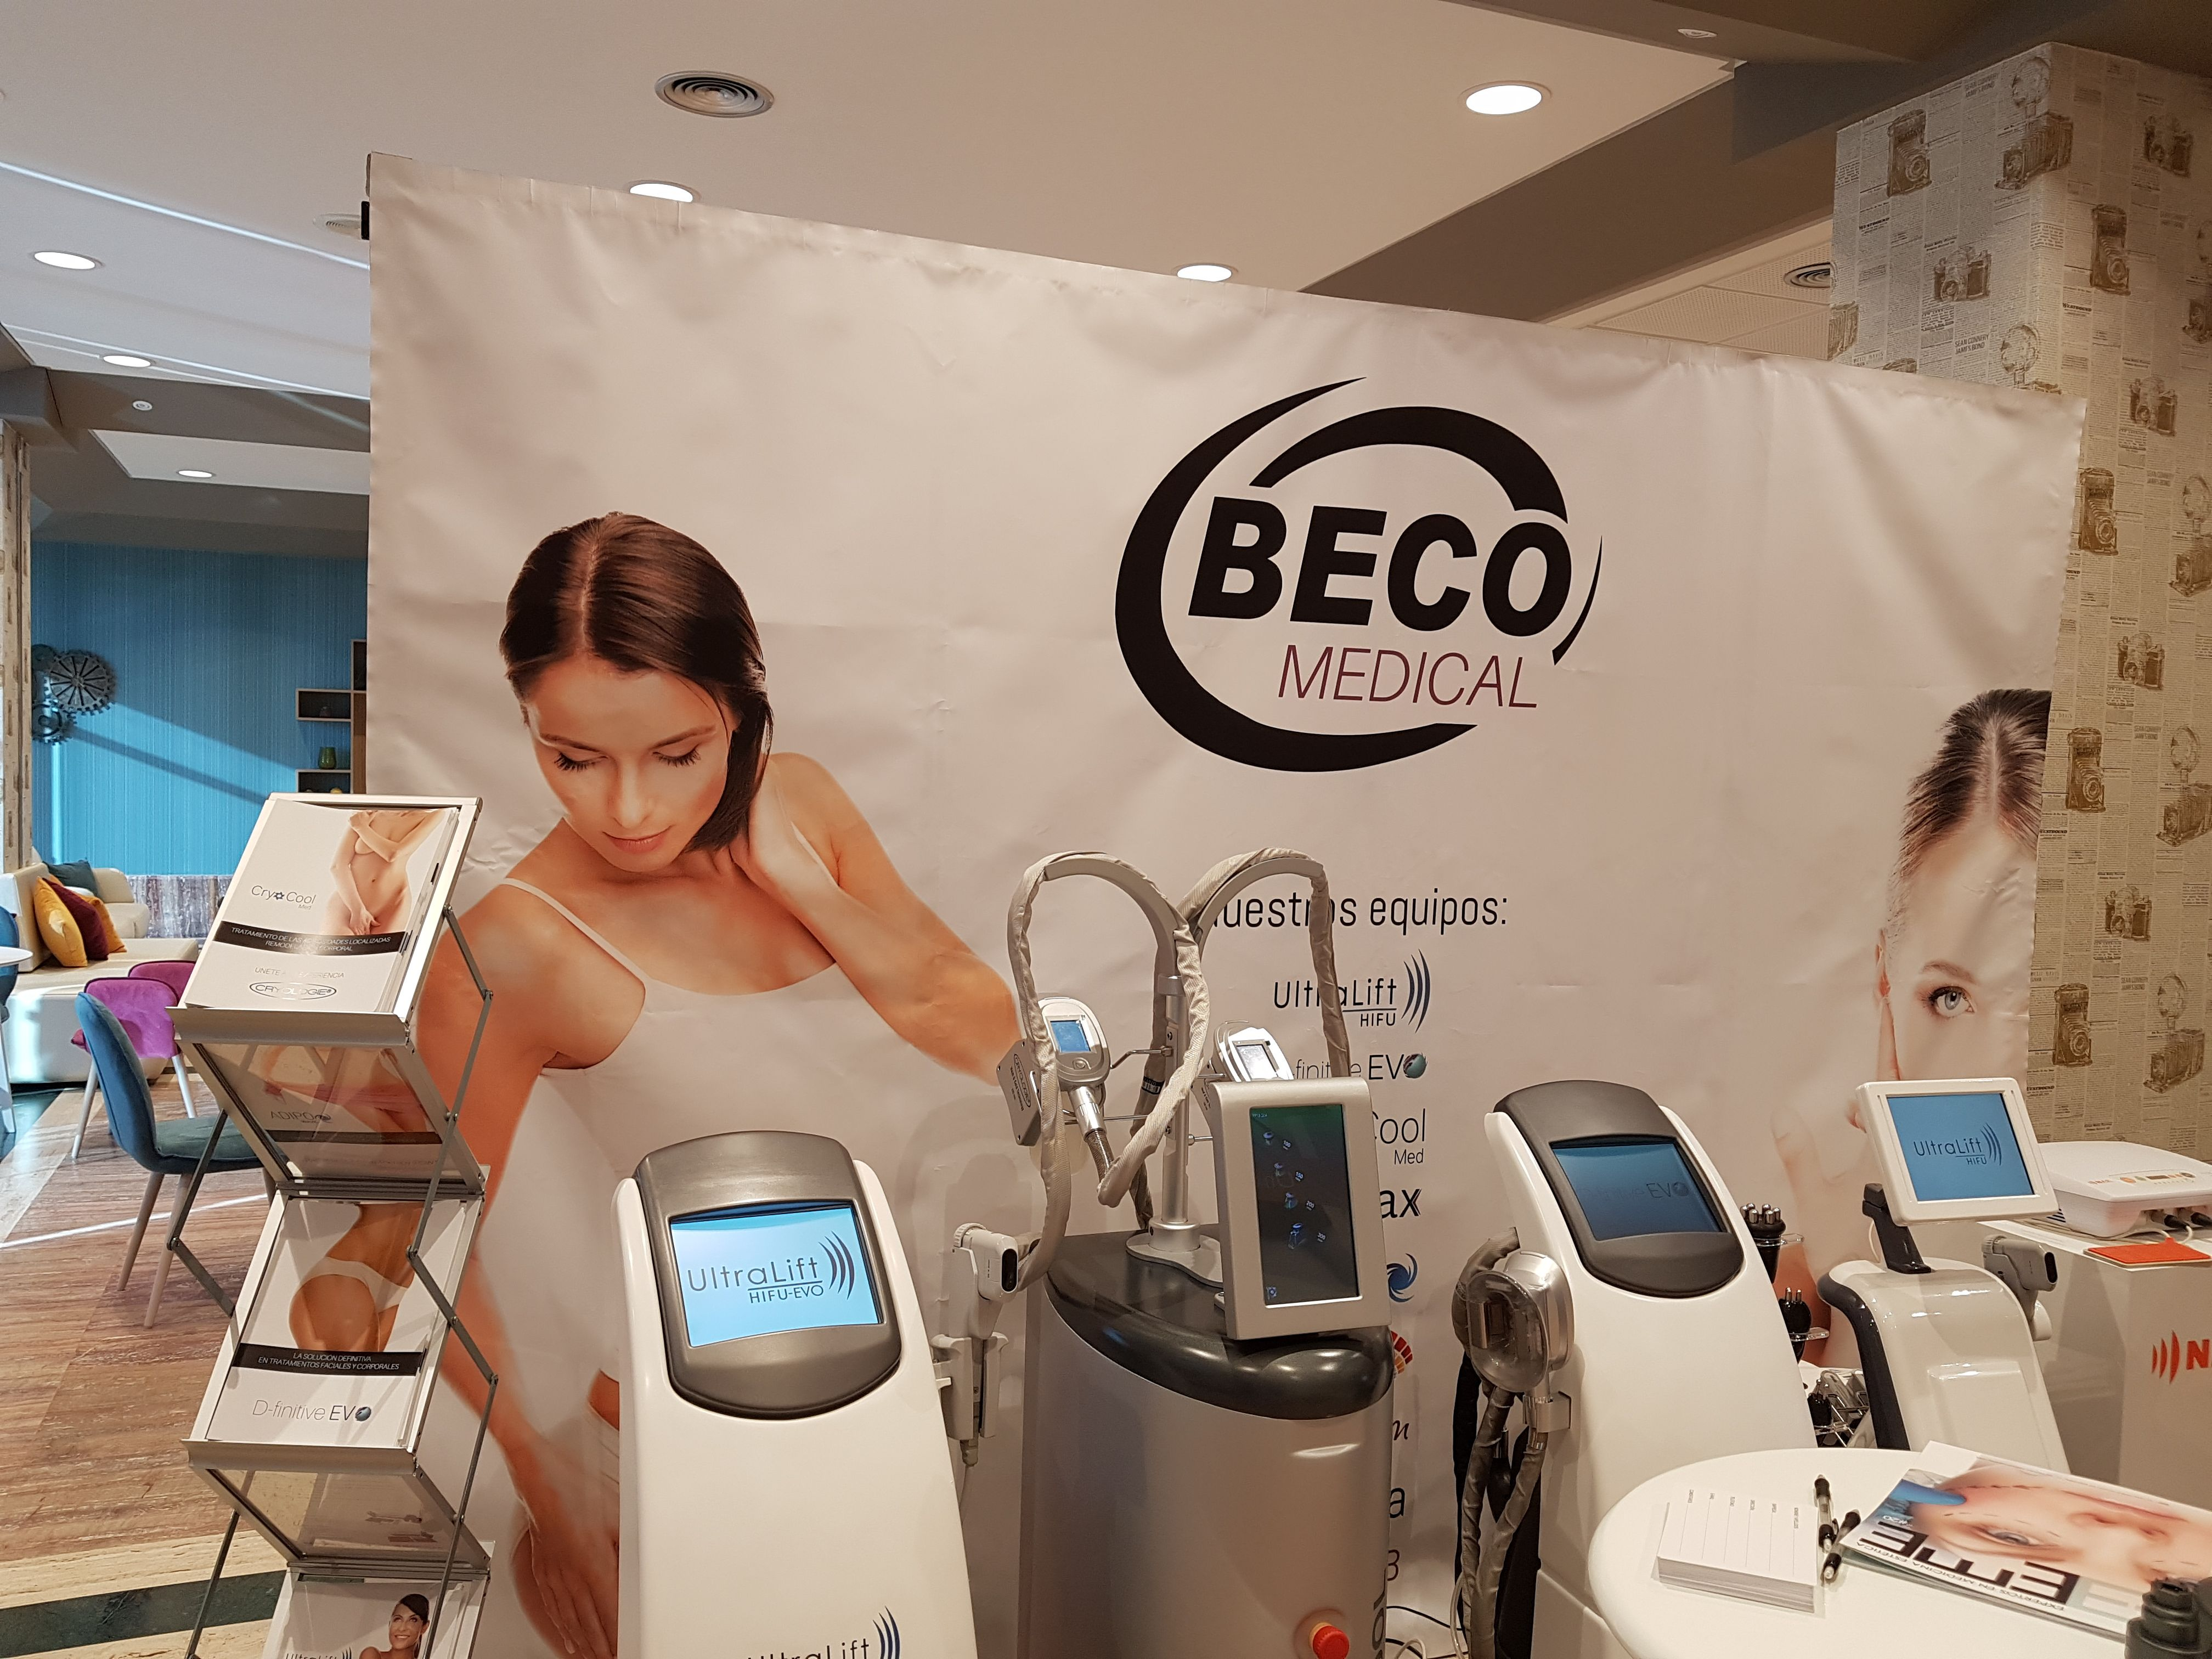 Beco medical ameclm